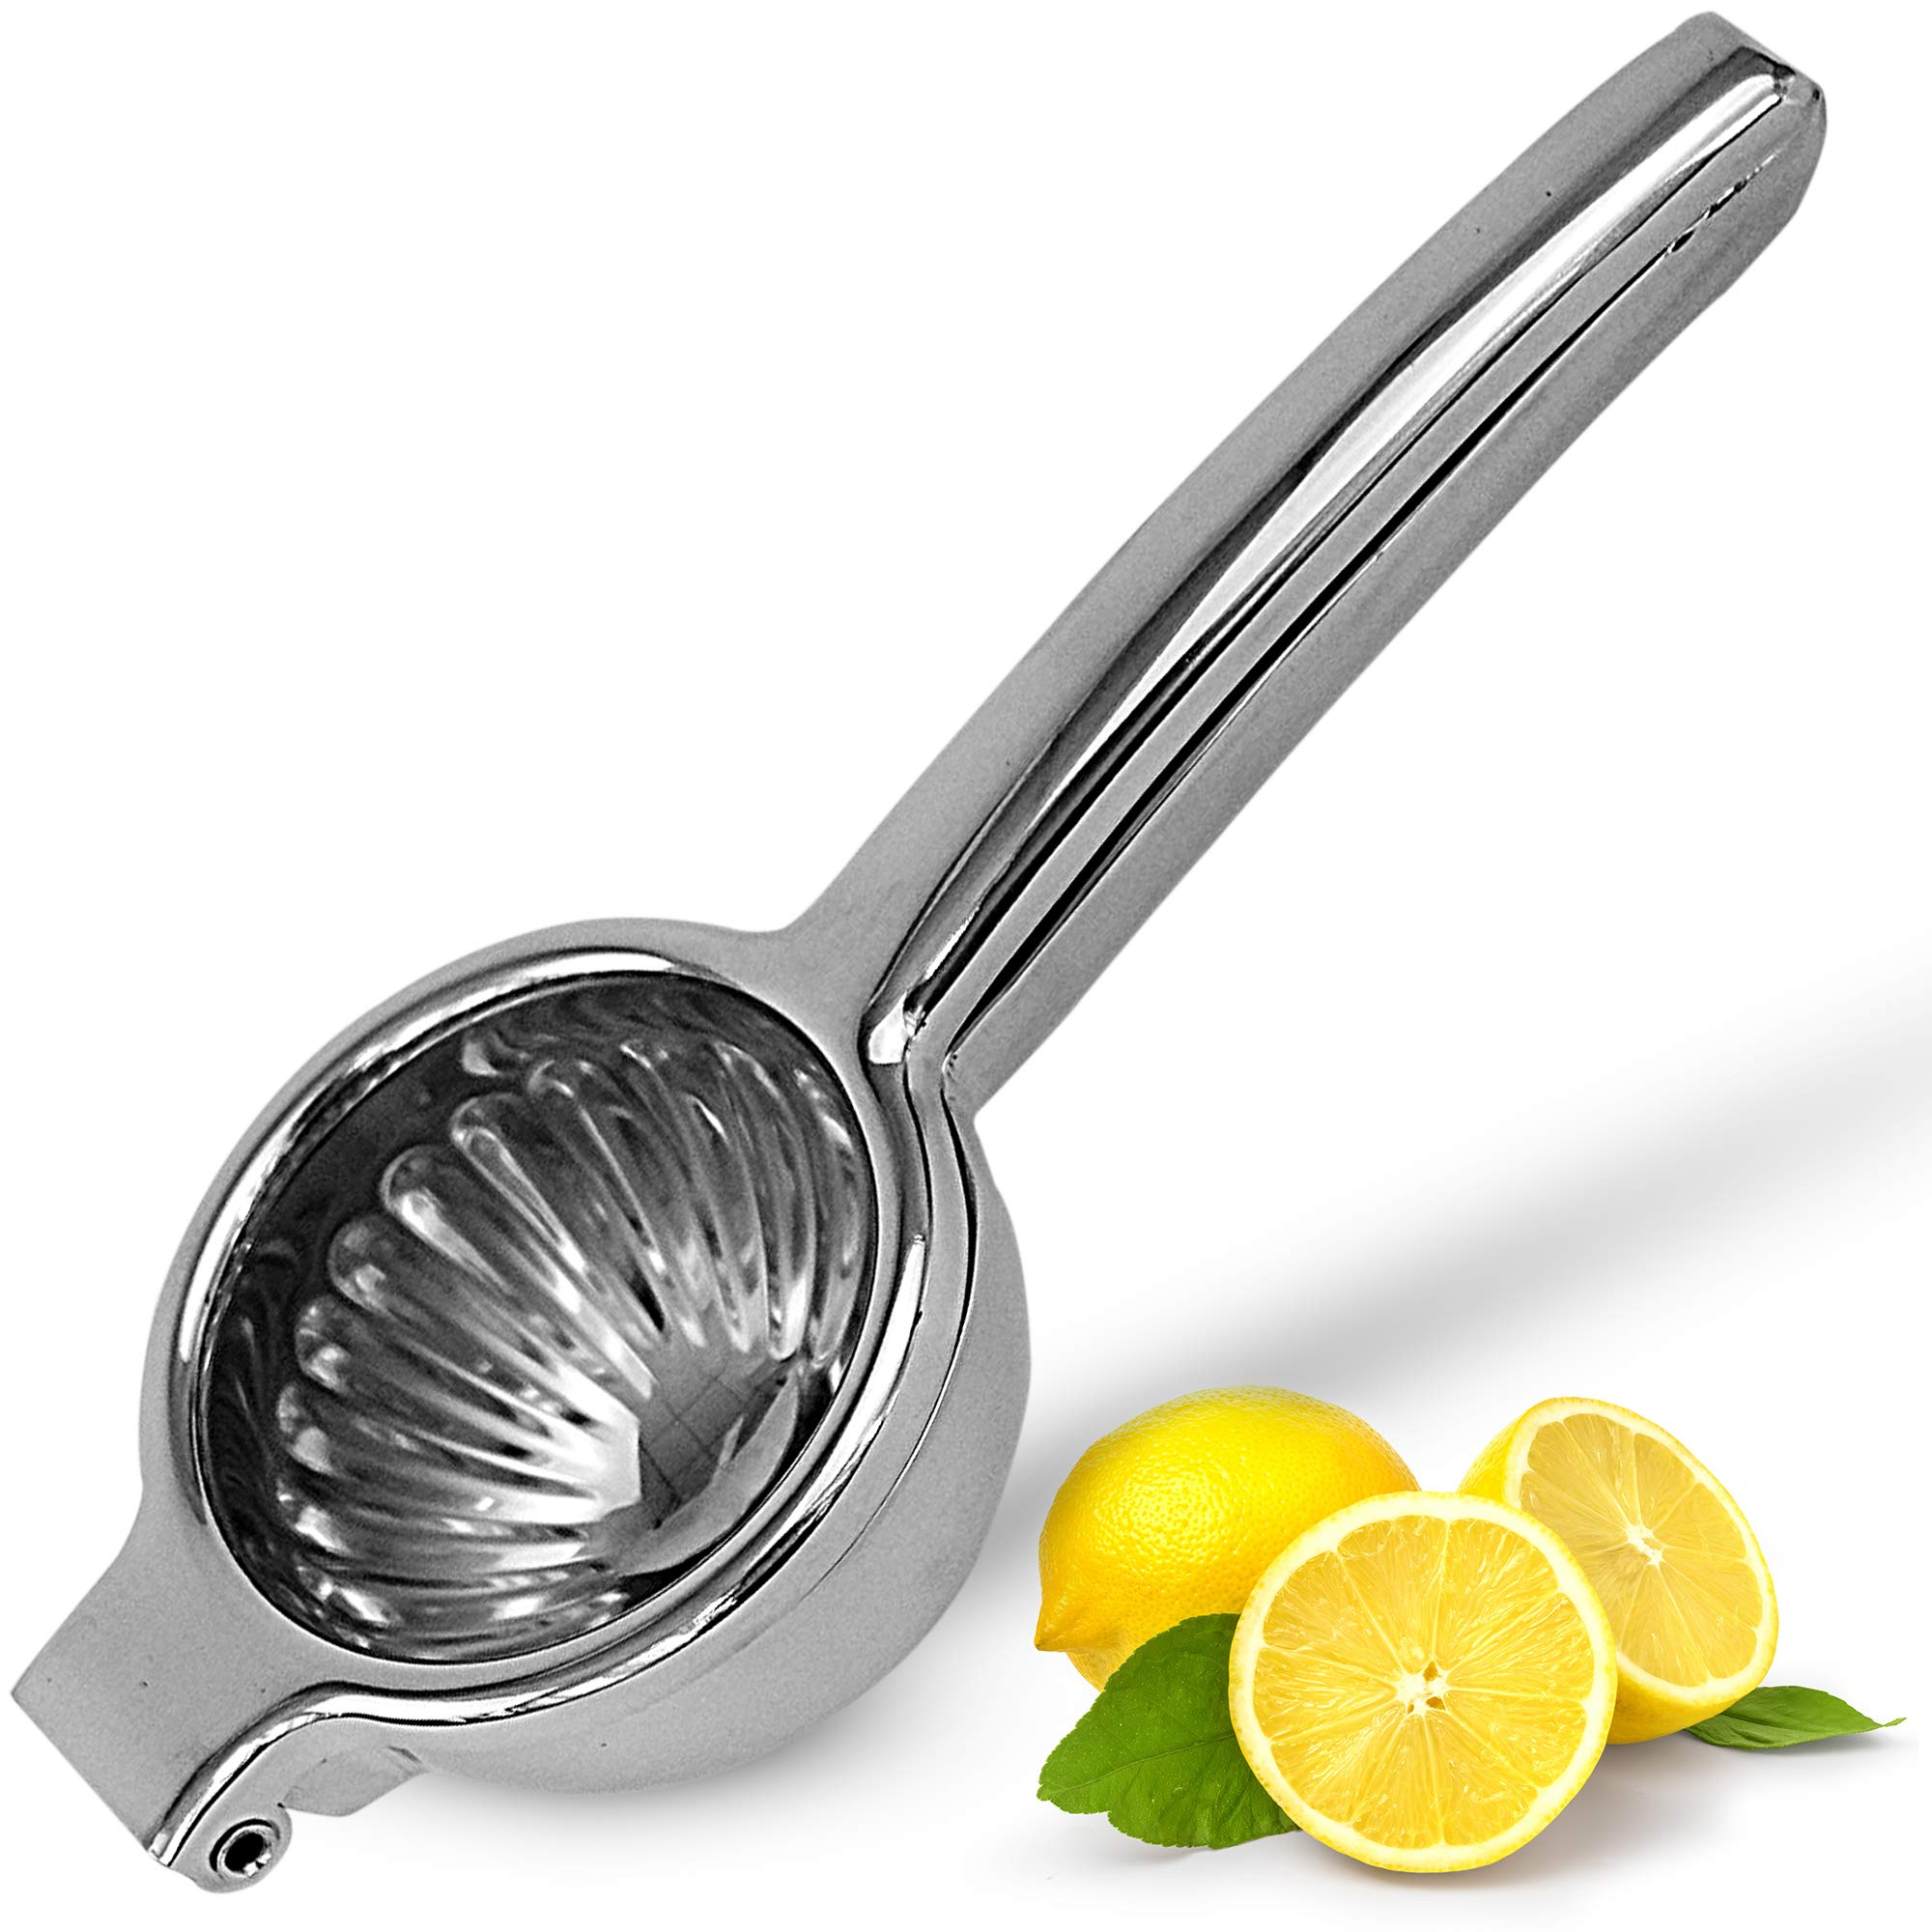 Lemon Squeezer Stainless Steel with Premium Quality Heavy Duty Solid Metal Squeezer Bowl - Large Manual Citrus Press Juicer and Lime Squeezer Stainless Steel - by Zulay Kitchen by Zulay Kitchen